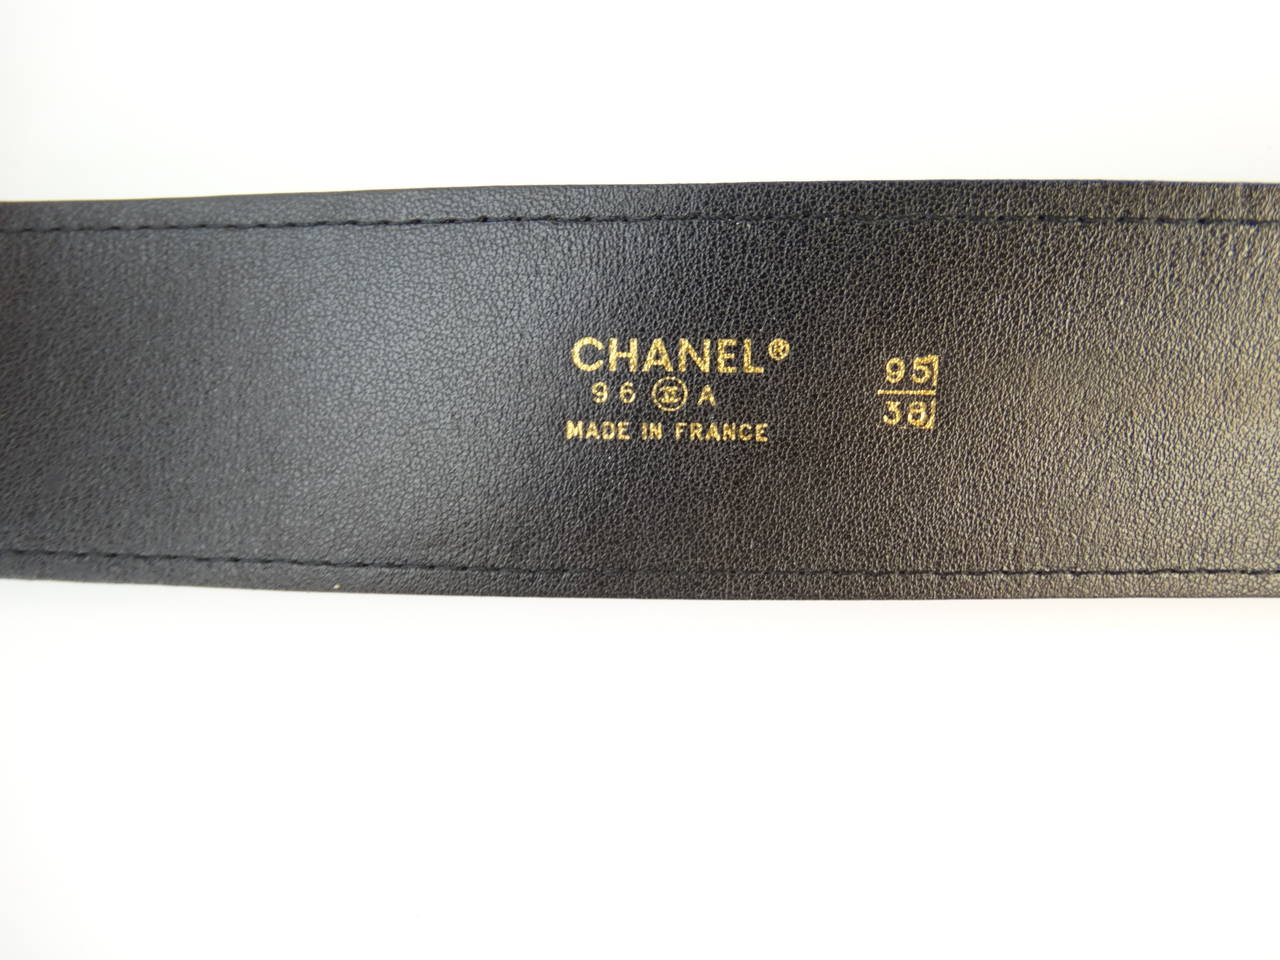 1996 Black Leather Chanel Belt with Gold Chain 6